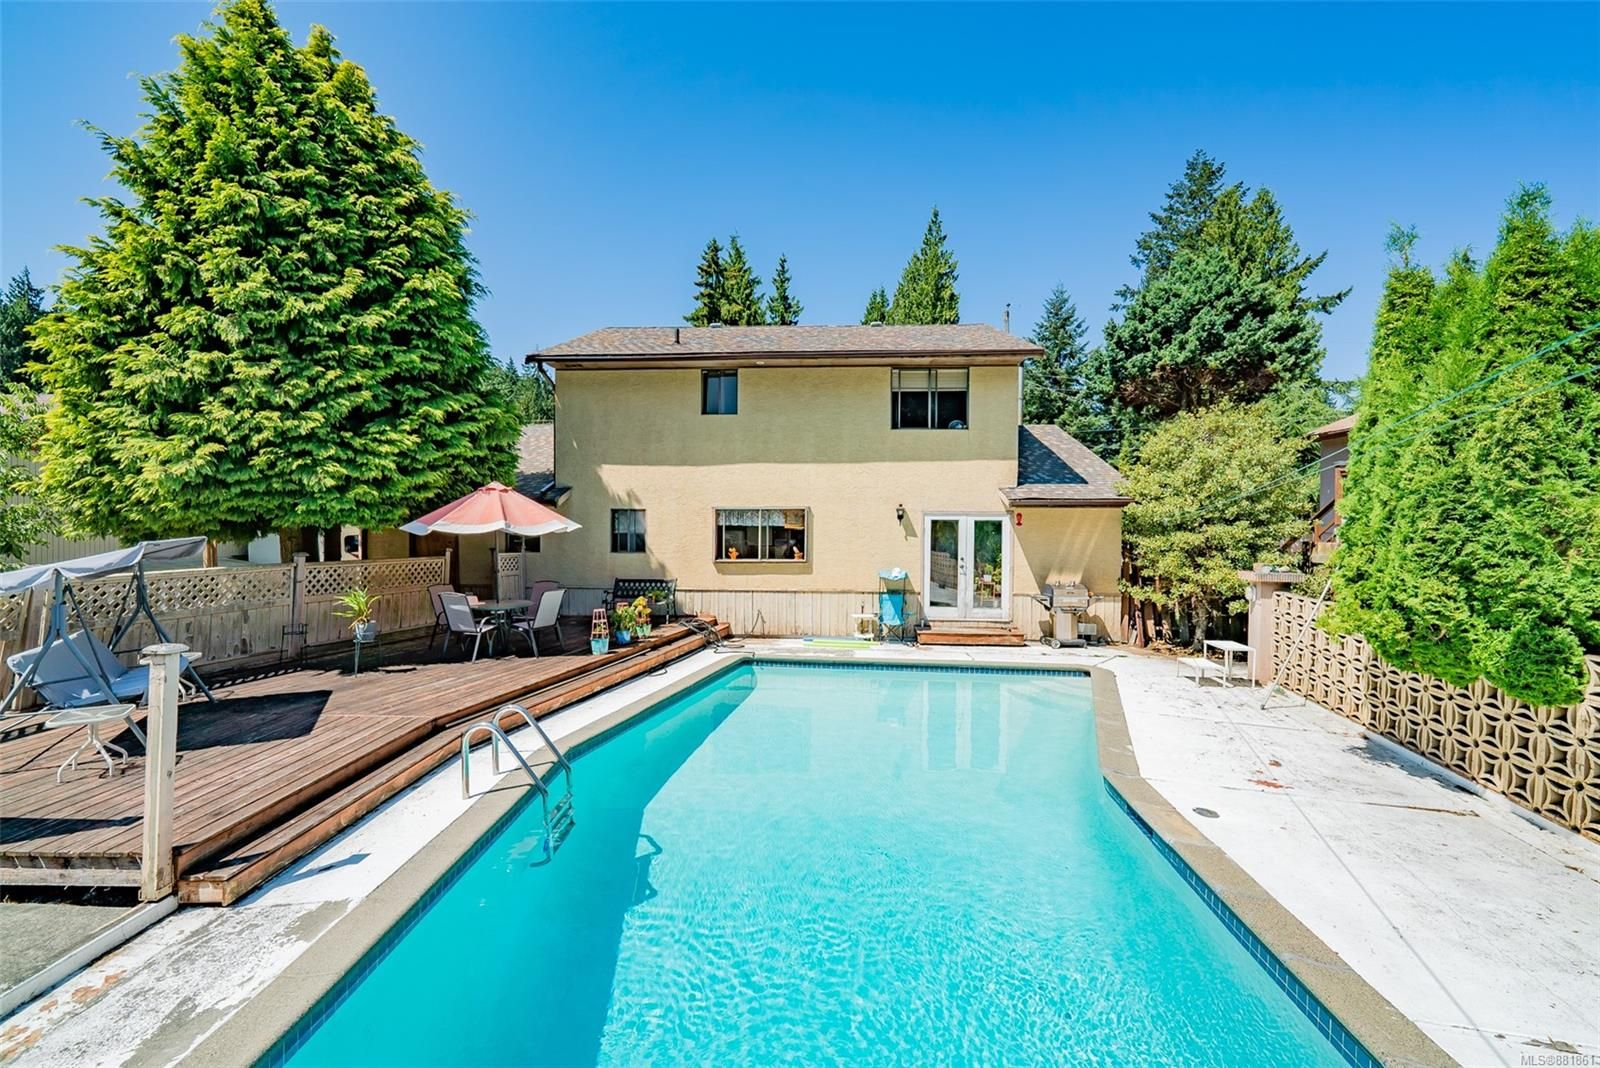 Main Photo: 3603 SUNRISE Pl in : Na Uplands House for sale (Nanaimo)  : MLS®# 881861